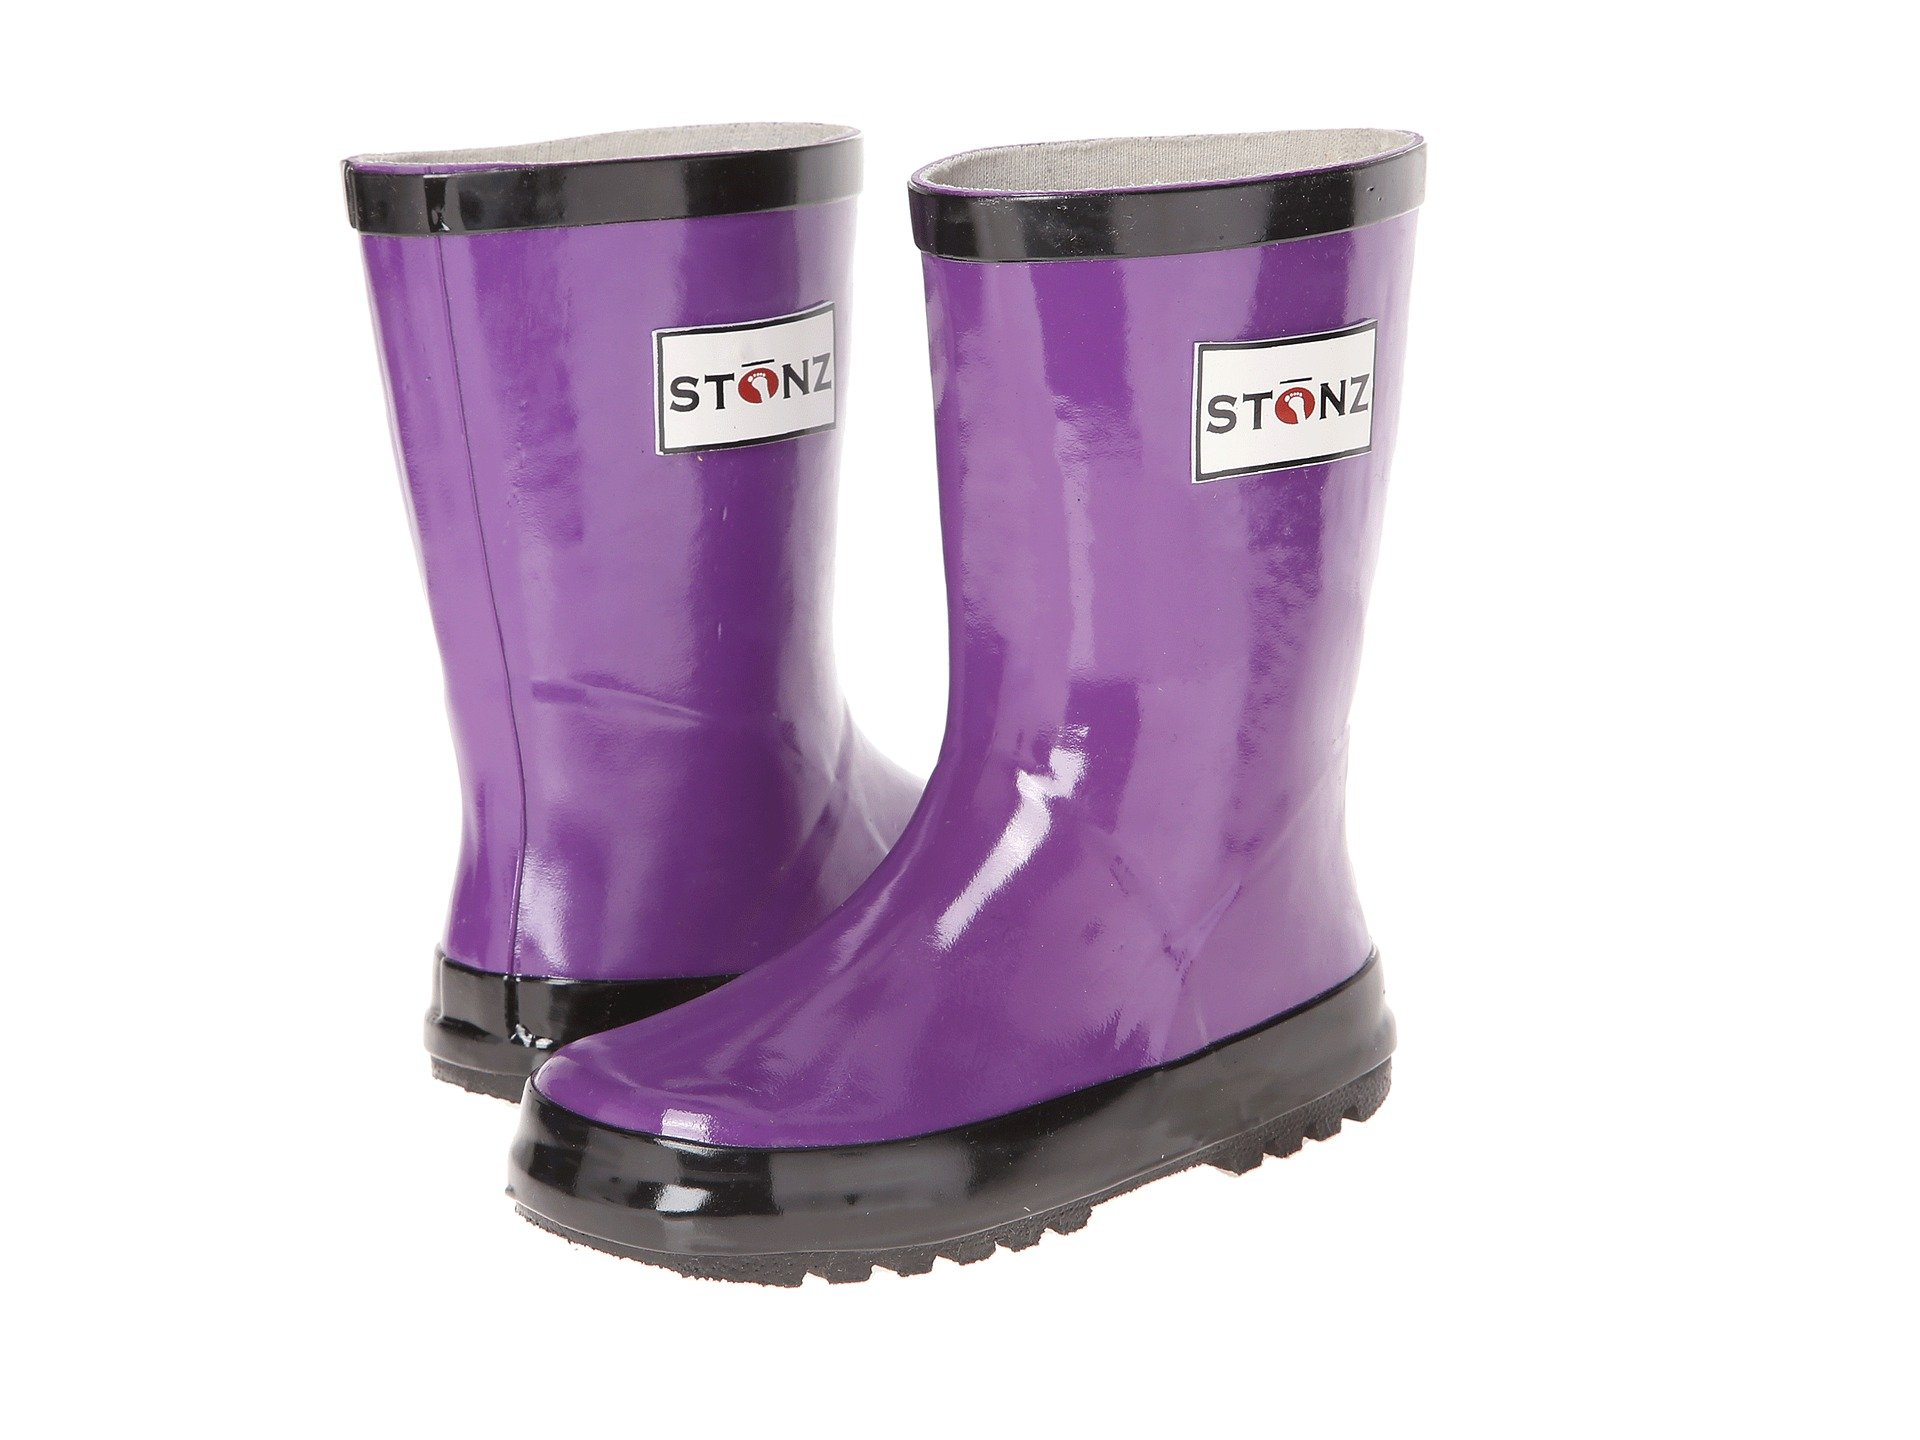 27e0fbd01de The Best Rain Boots for Toddlers to Keep Kids Warm and Dry!